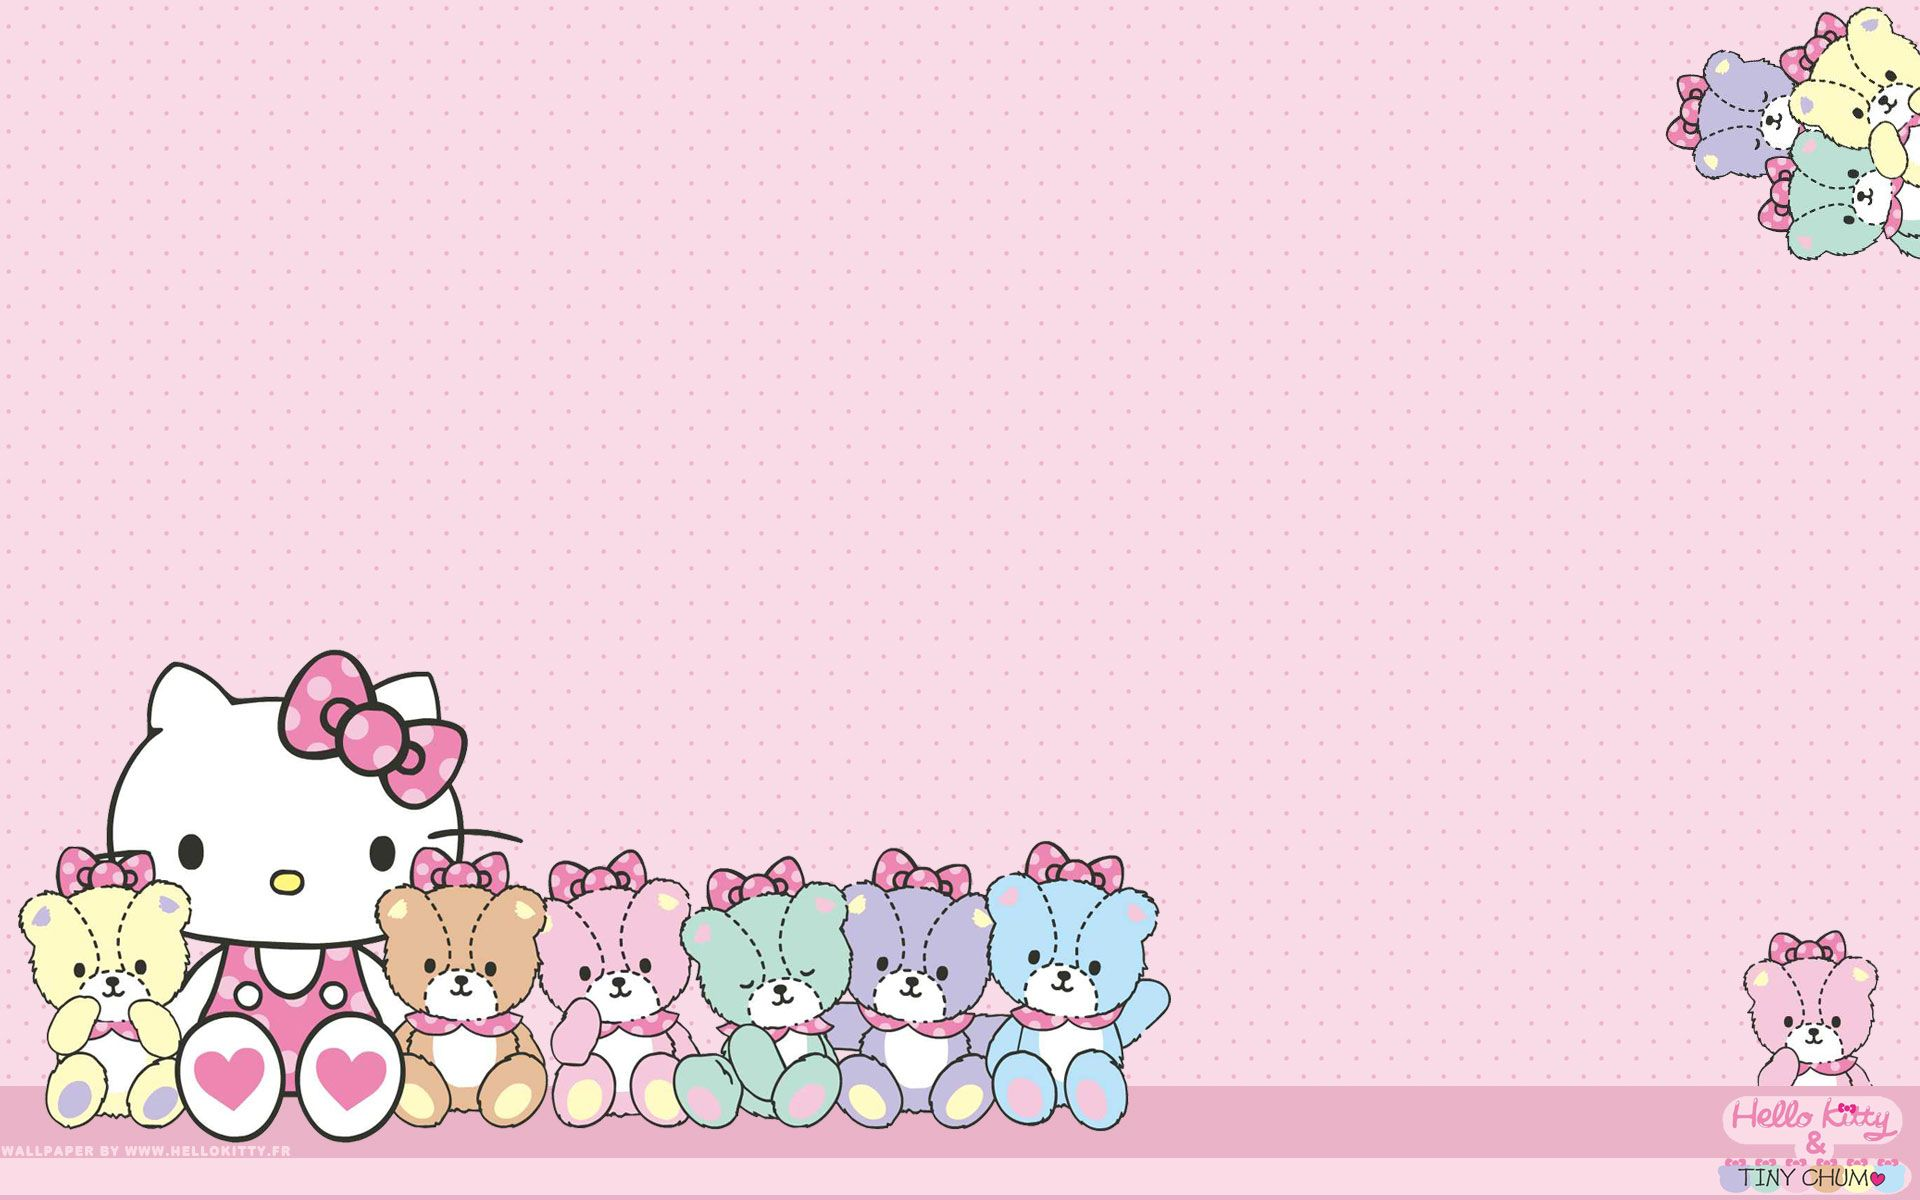 Pin By Mary Guino On Sanrio In 2020 Hello Kitty Wallpaper Hd Hello Kitty Wallpaper Kitty Wallpaper